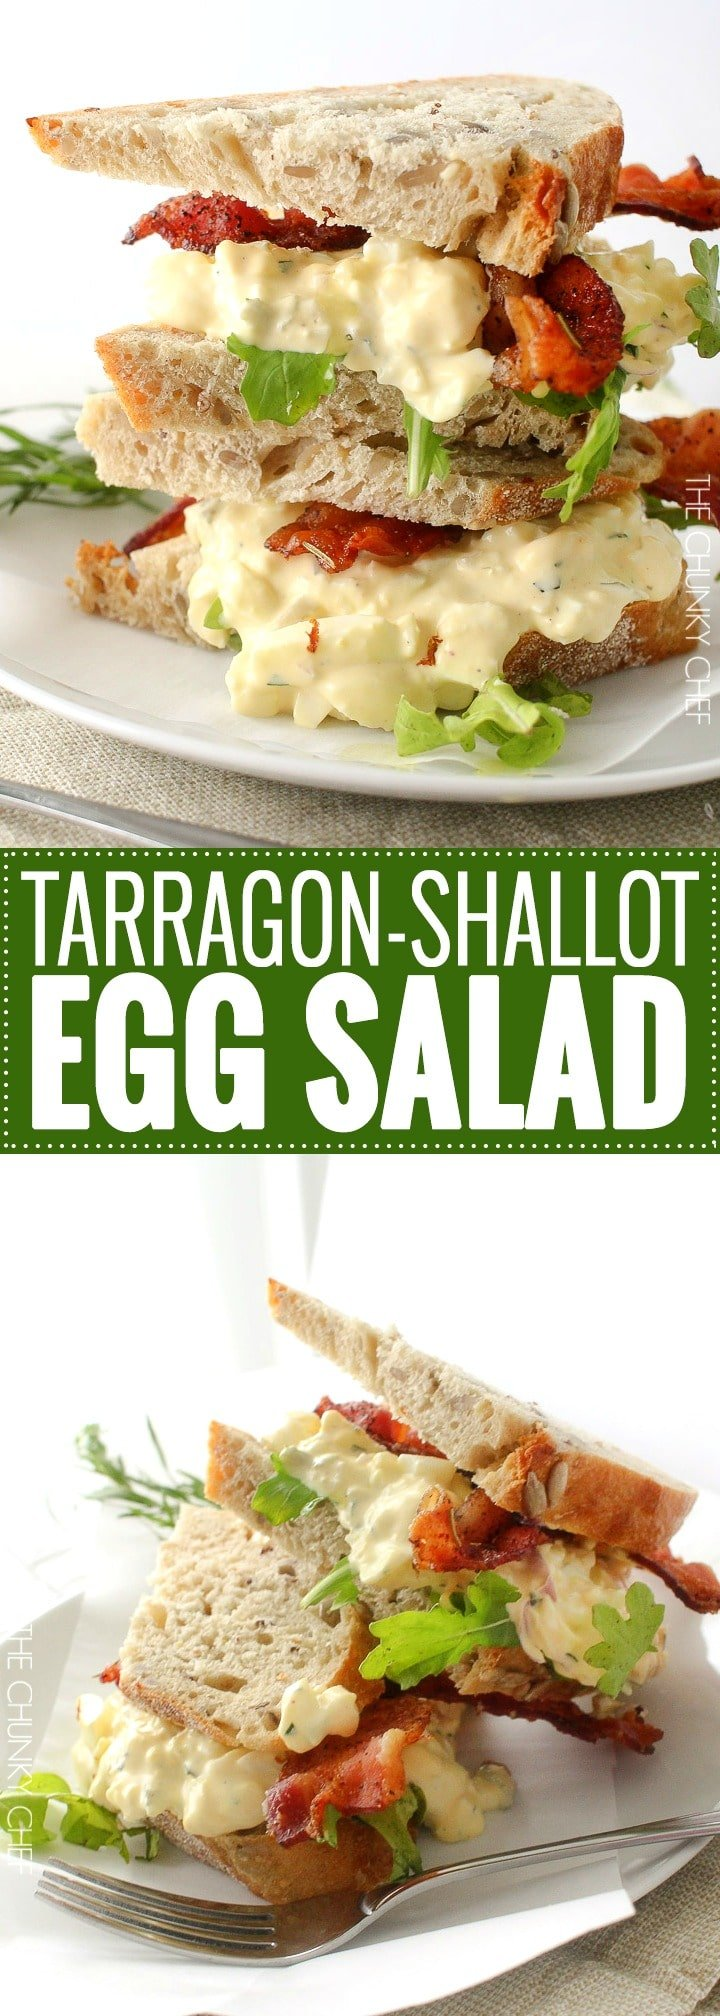 Tarragon and Shallot Egg Salad | No more boring egg salad sandwiches!  Fresh tarragon and minced shallot give this egg salad a light and gourmet twist!  Plus, the secret to perfectly hardboiled eggs, every time. | http://thechunkychef.com